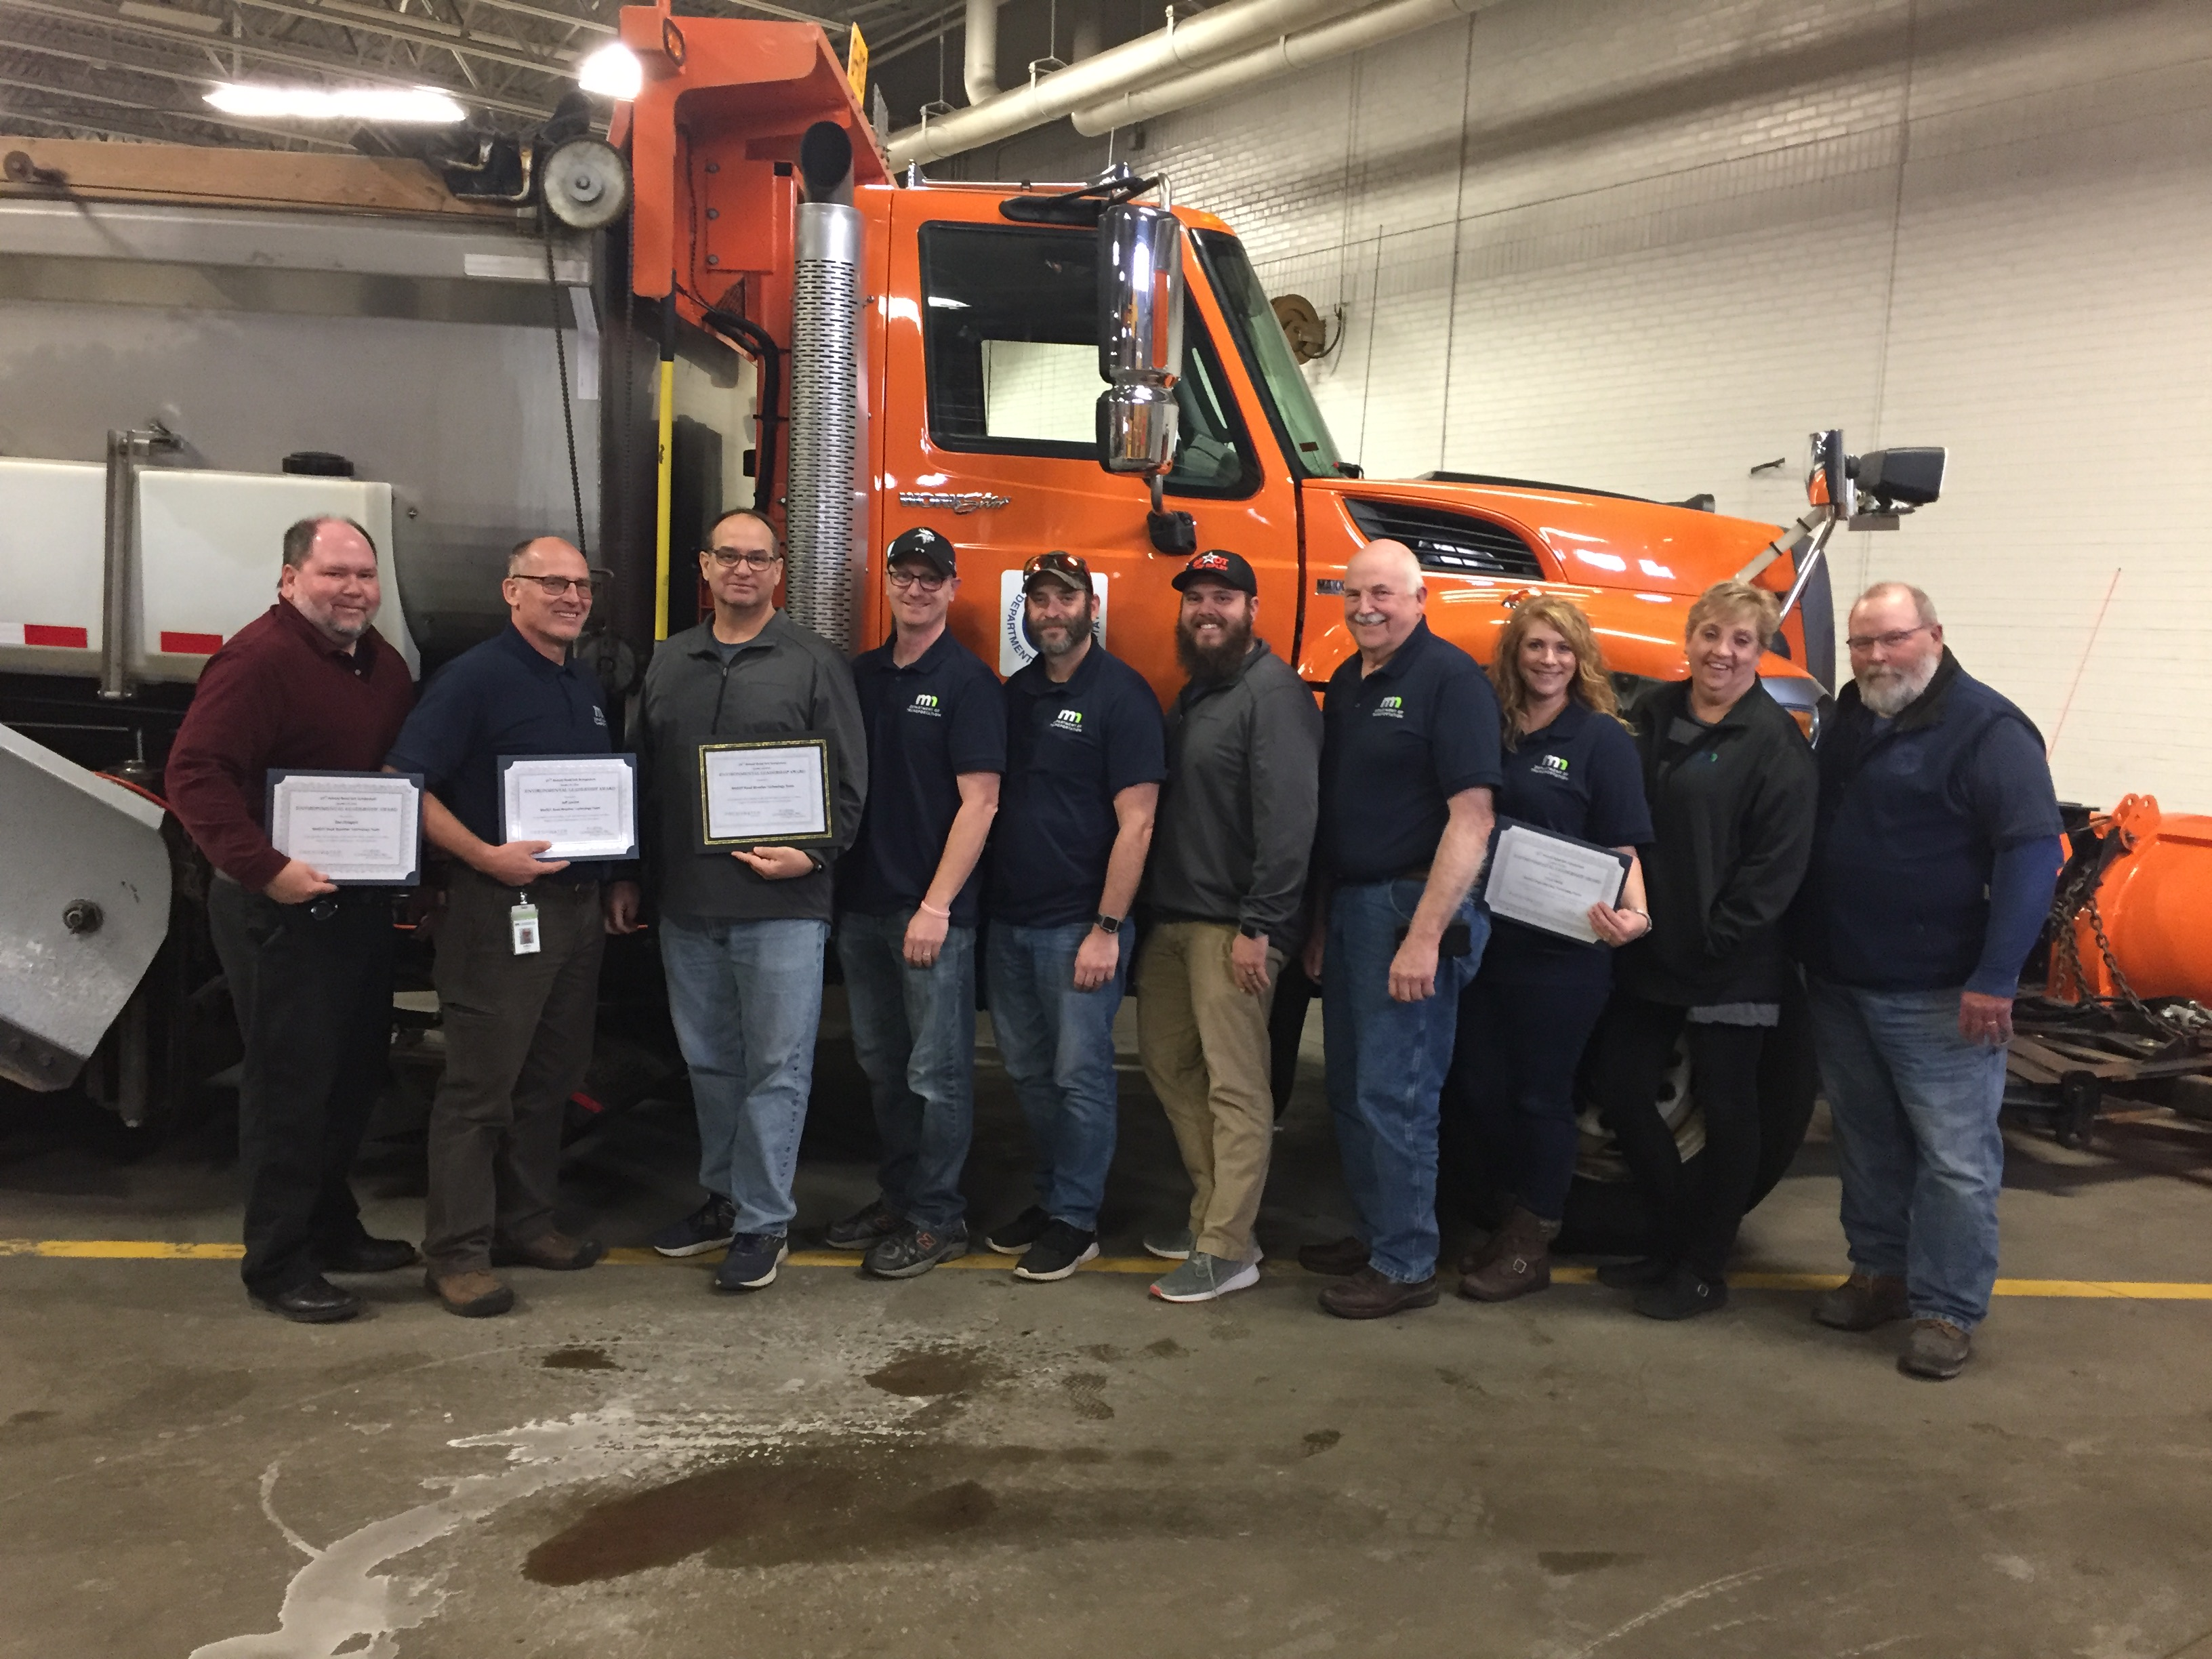 Nine people lined up in front of a plow truck, with four holding certificates